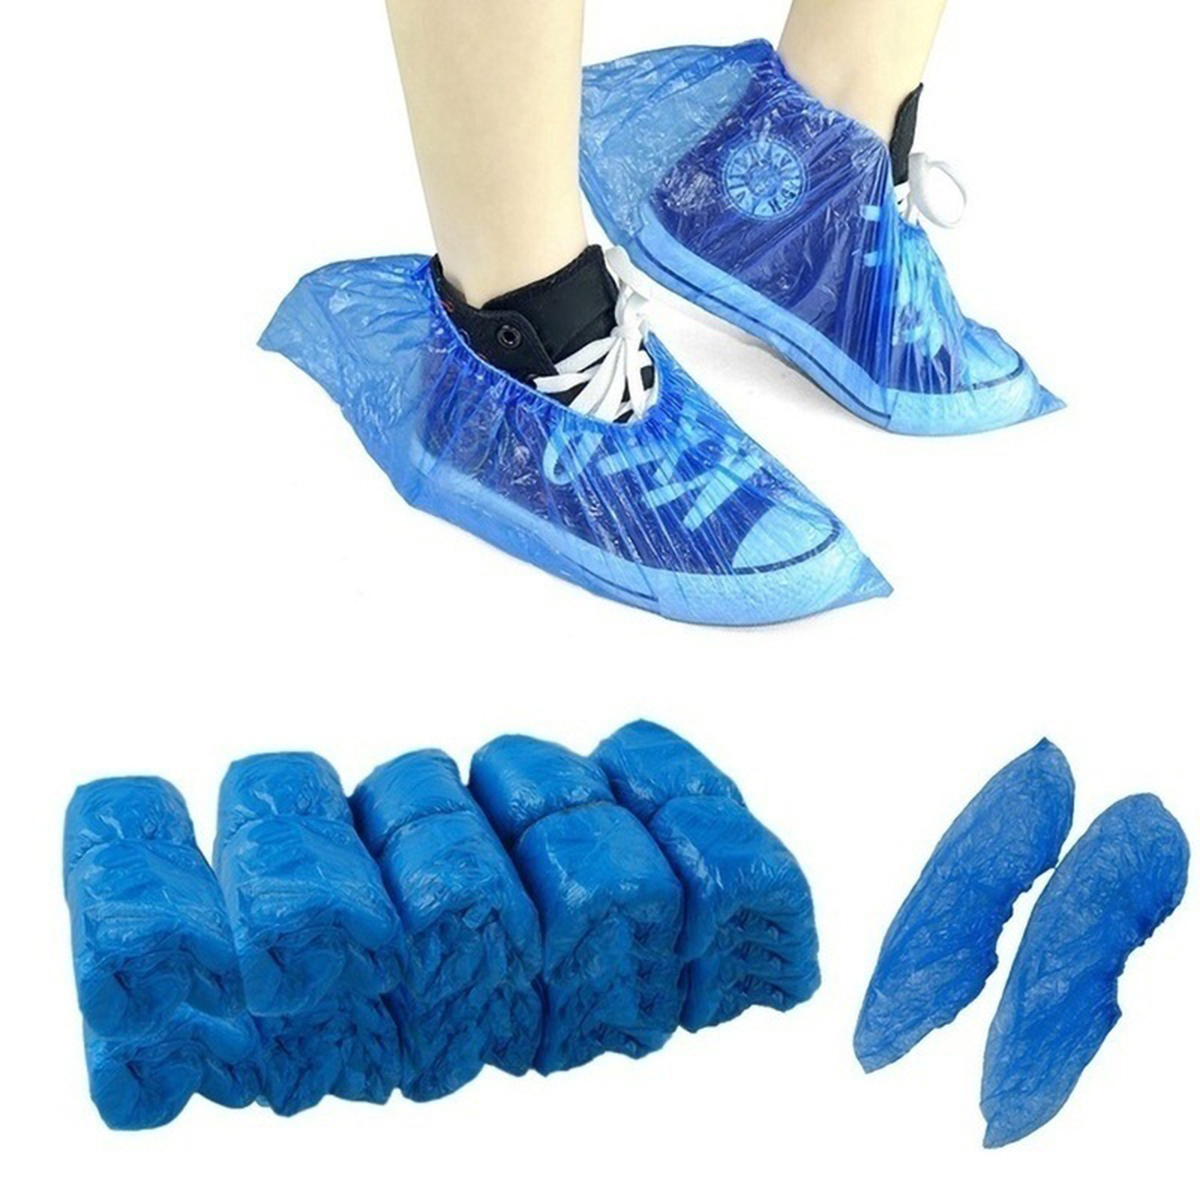 100 Pcs Disposable Shoe Covers Waterproof Slip Resistant Durable